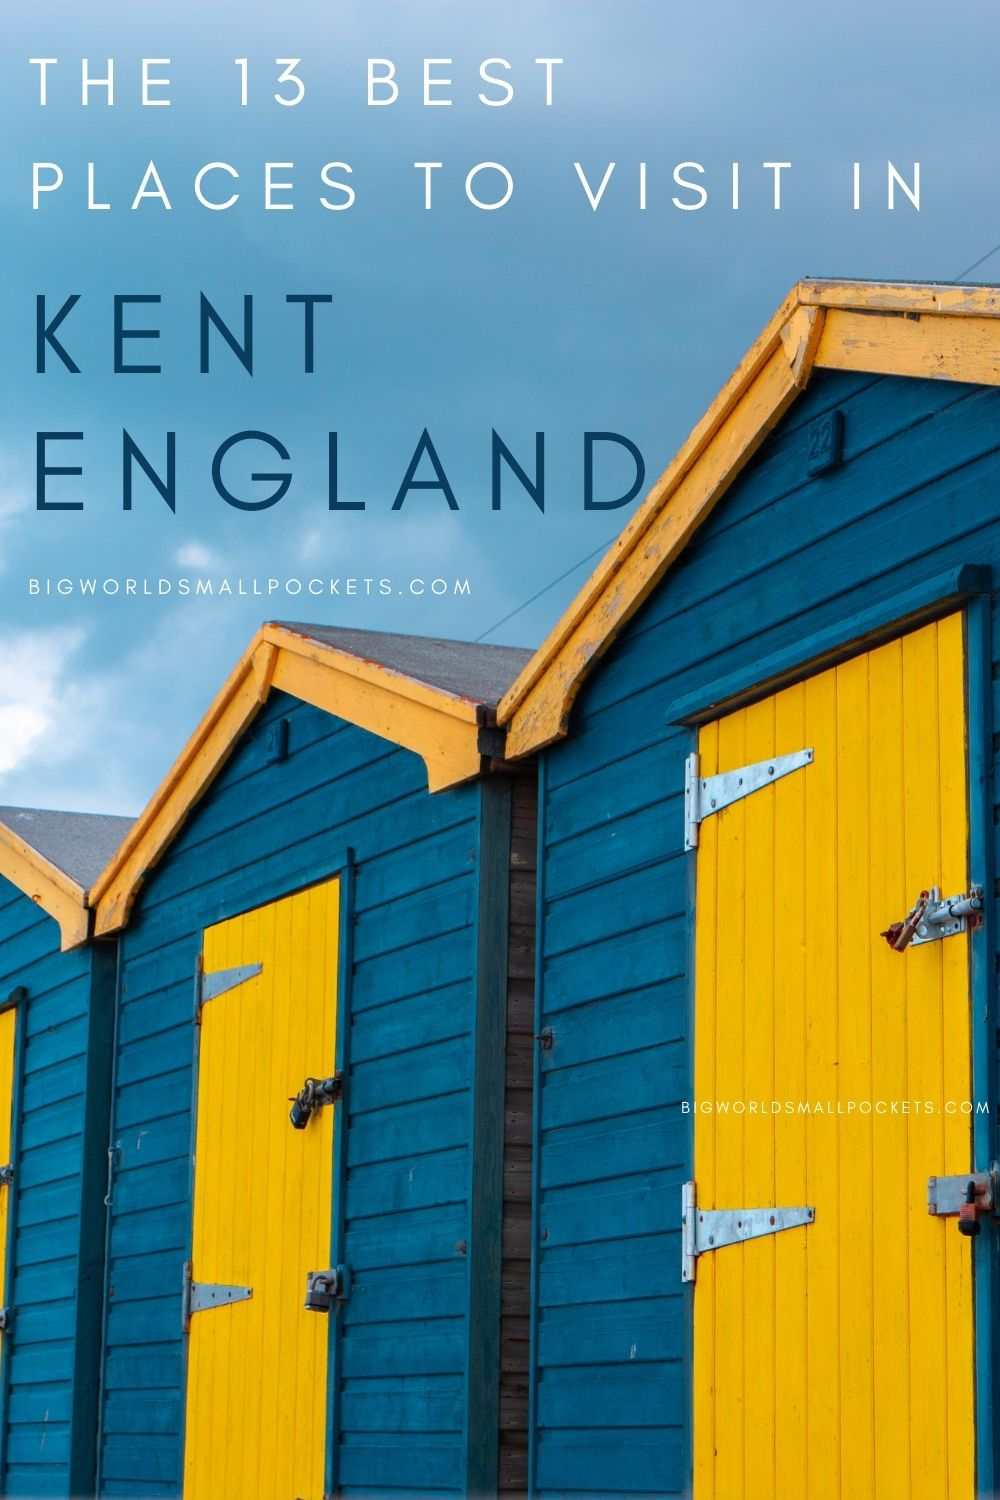 The 13 Best Places to Visit in Kent, England